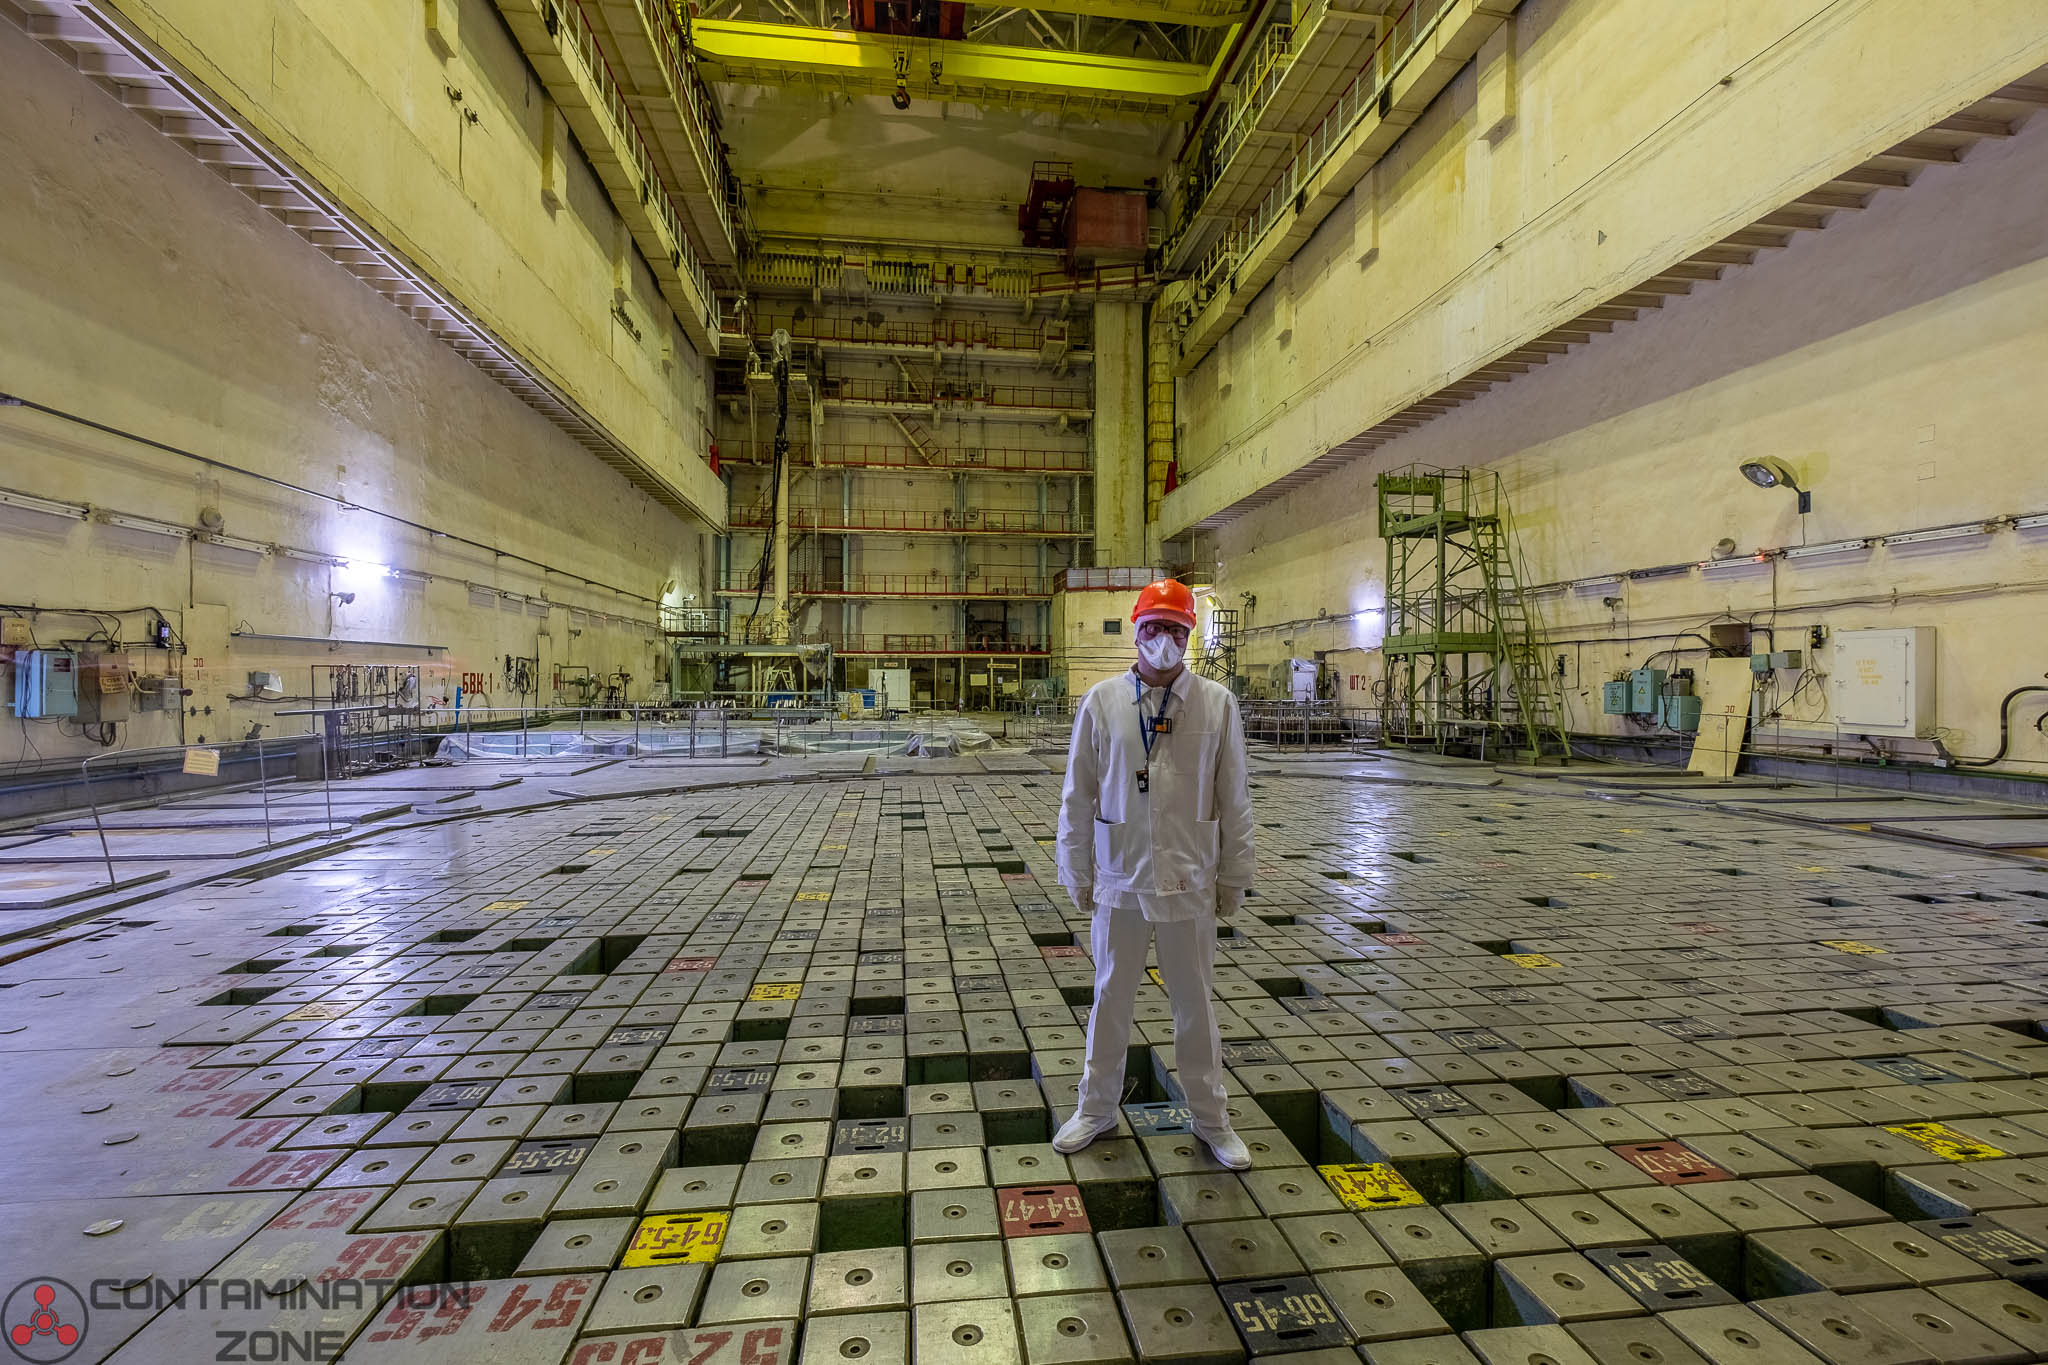 Reactor Hall 3 of Chernobyl plant. This unit was identical to unit 4 and operated until December 2000